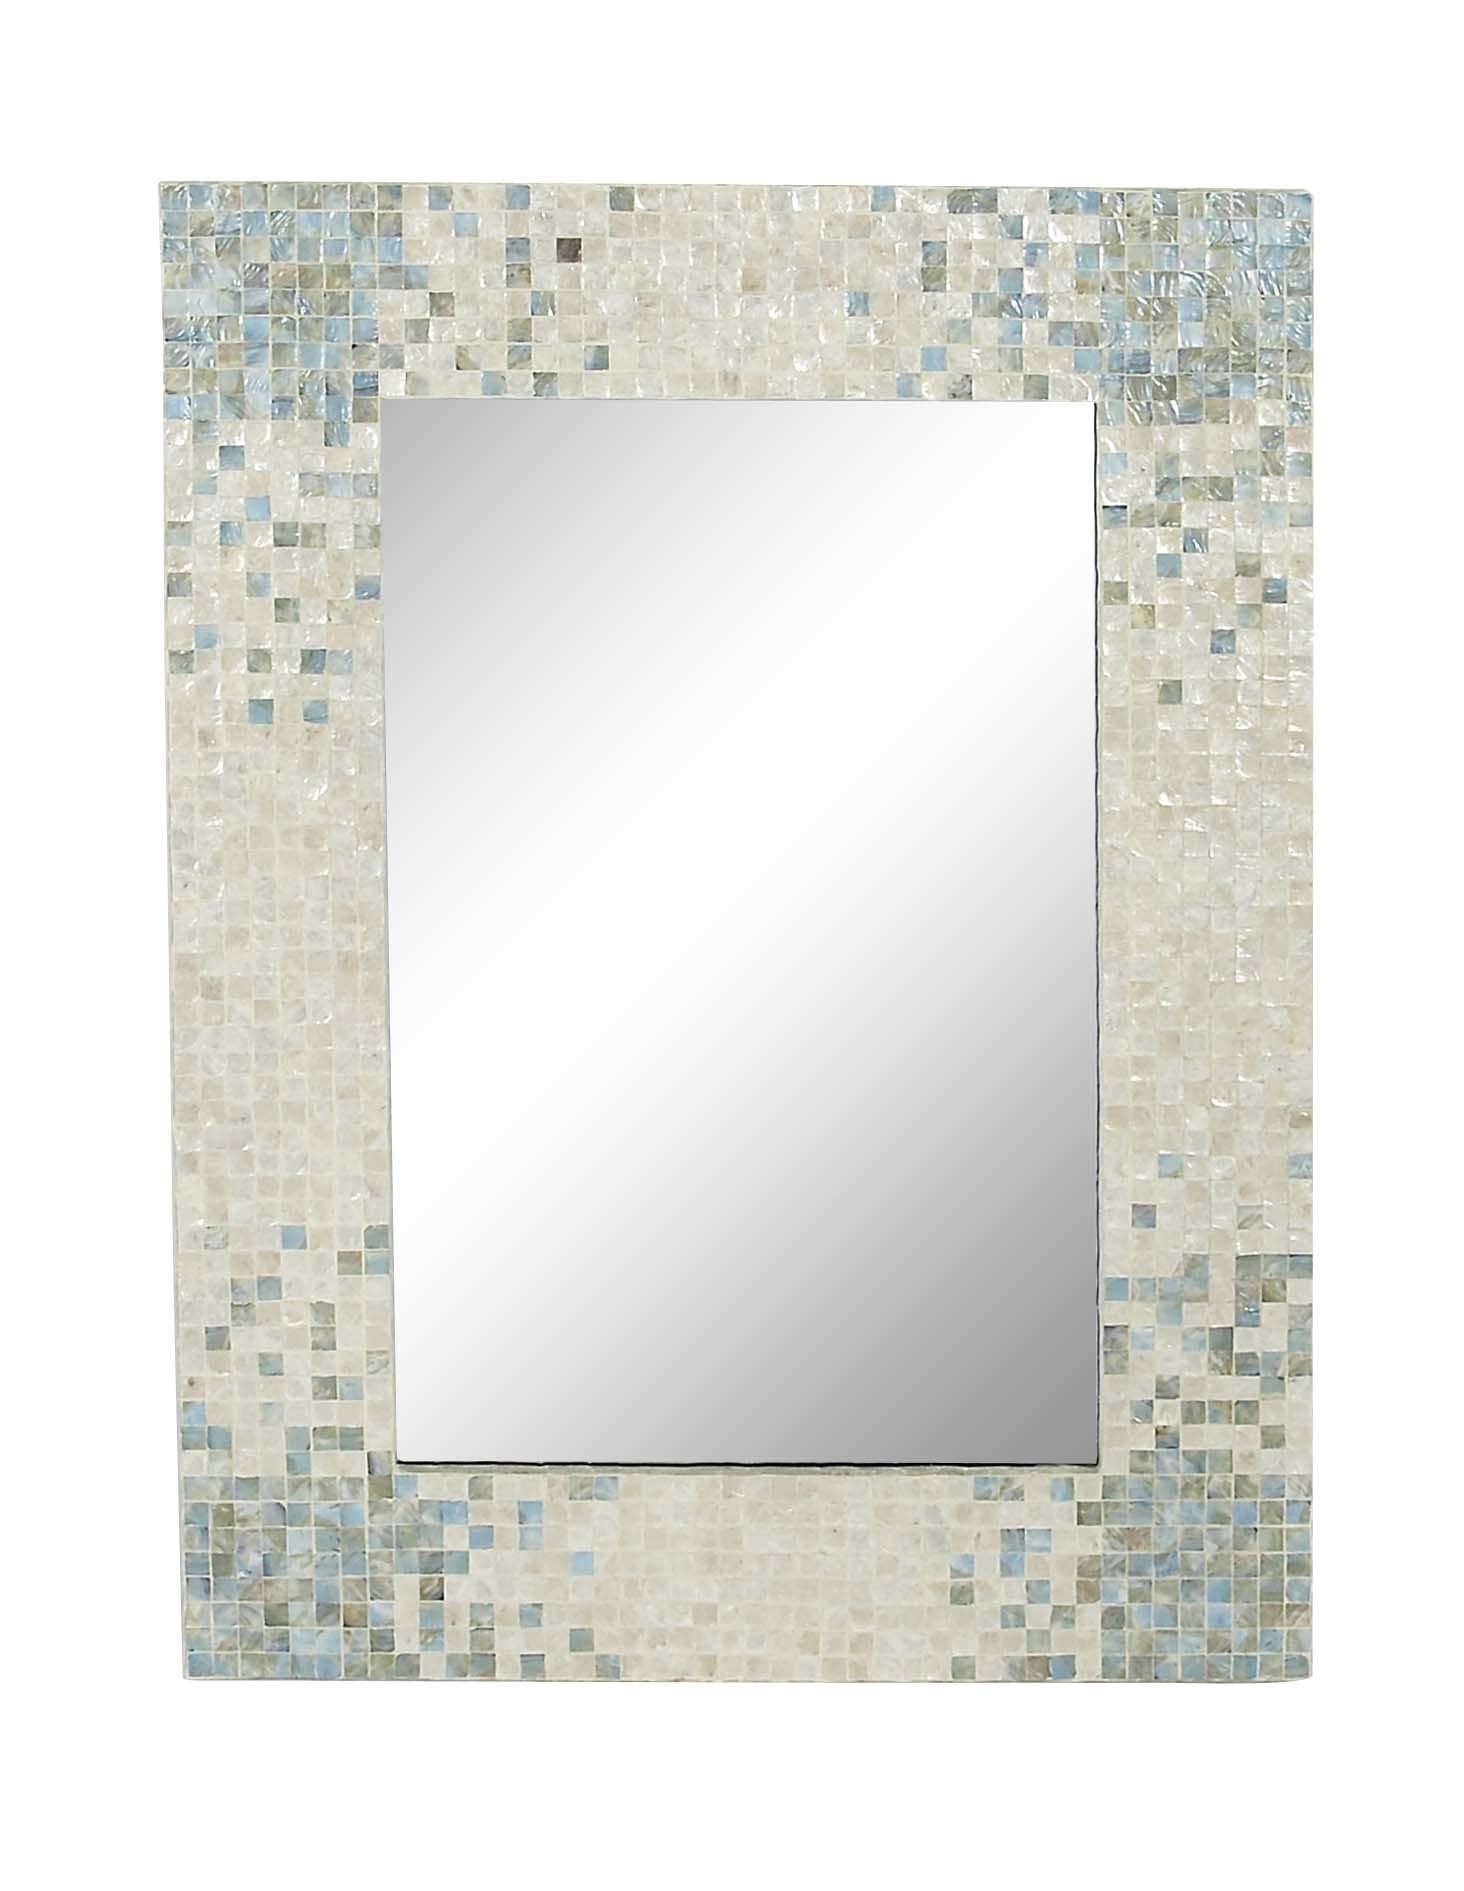 Farmhouse & Rustic Blue Wall & Accent Mirrors | Birch Lane With Lajoie Rustic Accent Mirrors (View 3 of 20)